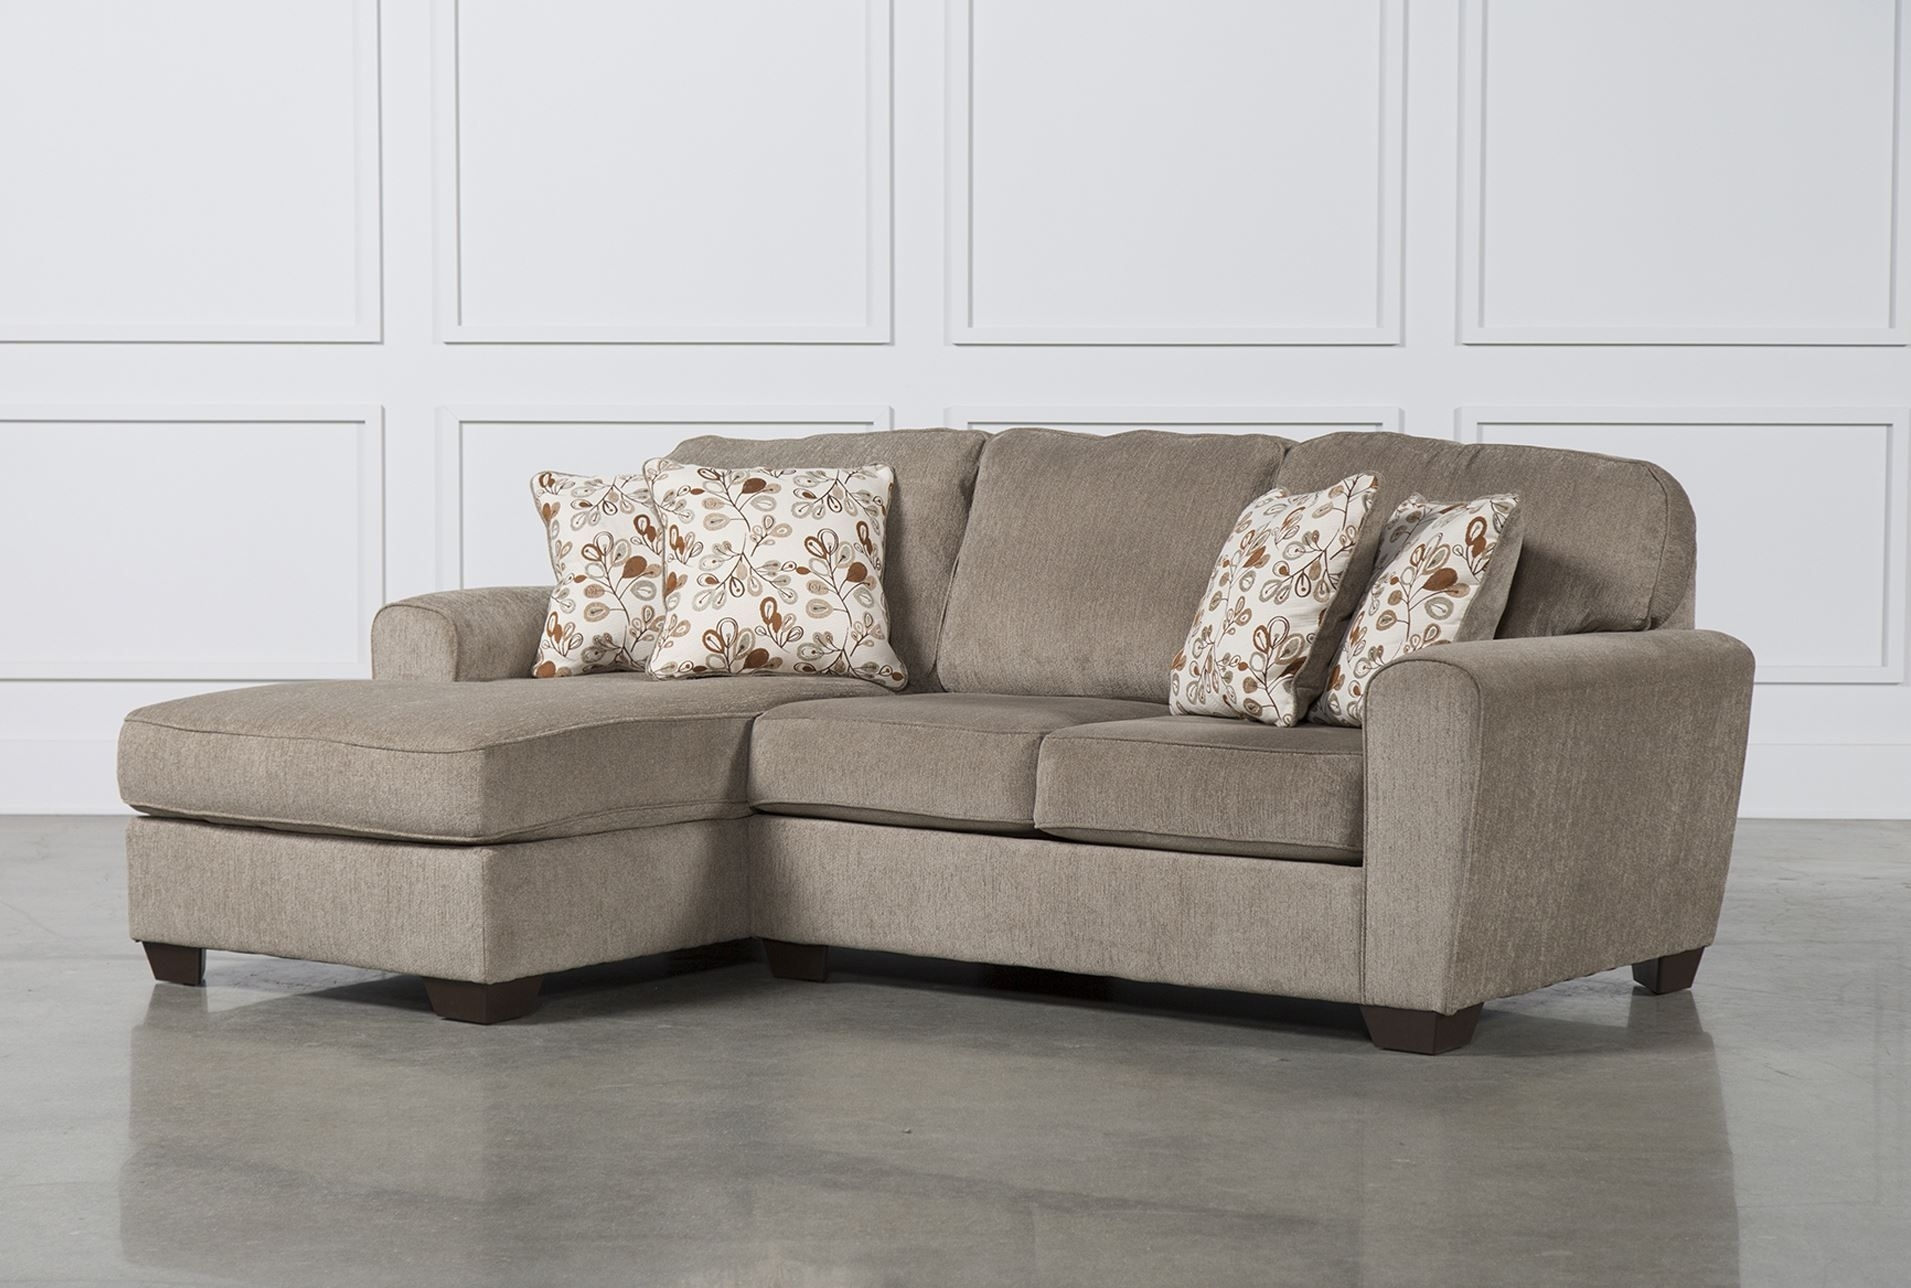 Patola Park 2 Piece Sectional W/laf Chaise | Home Improvements Pertaining To Blaine 3 Piece Sectionals (Photo 7 of 30)